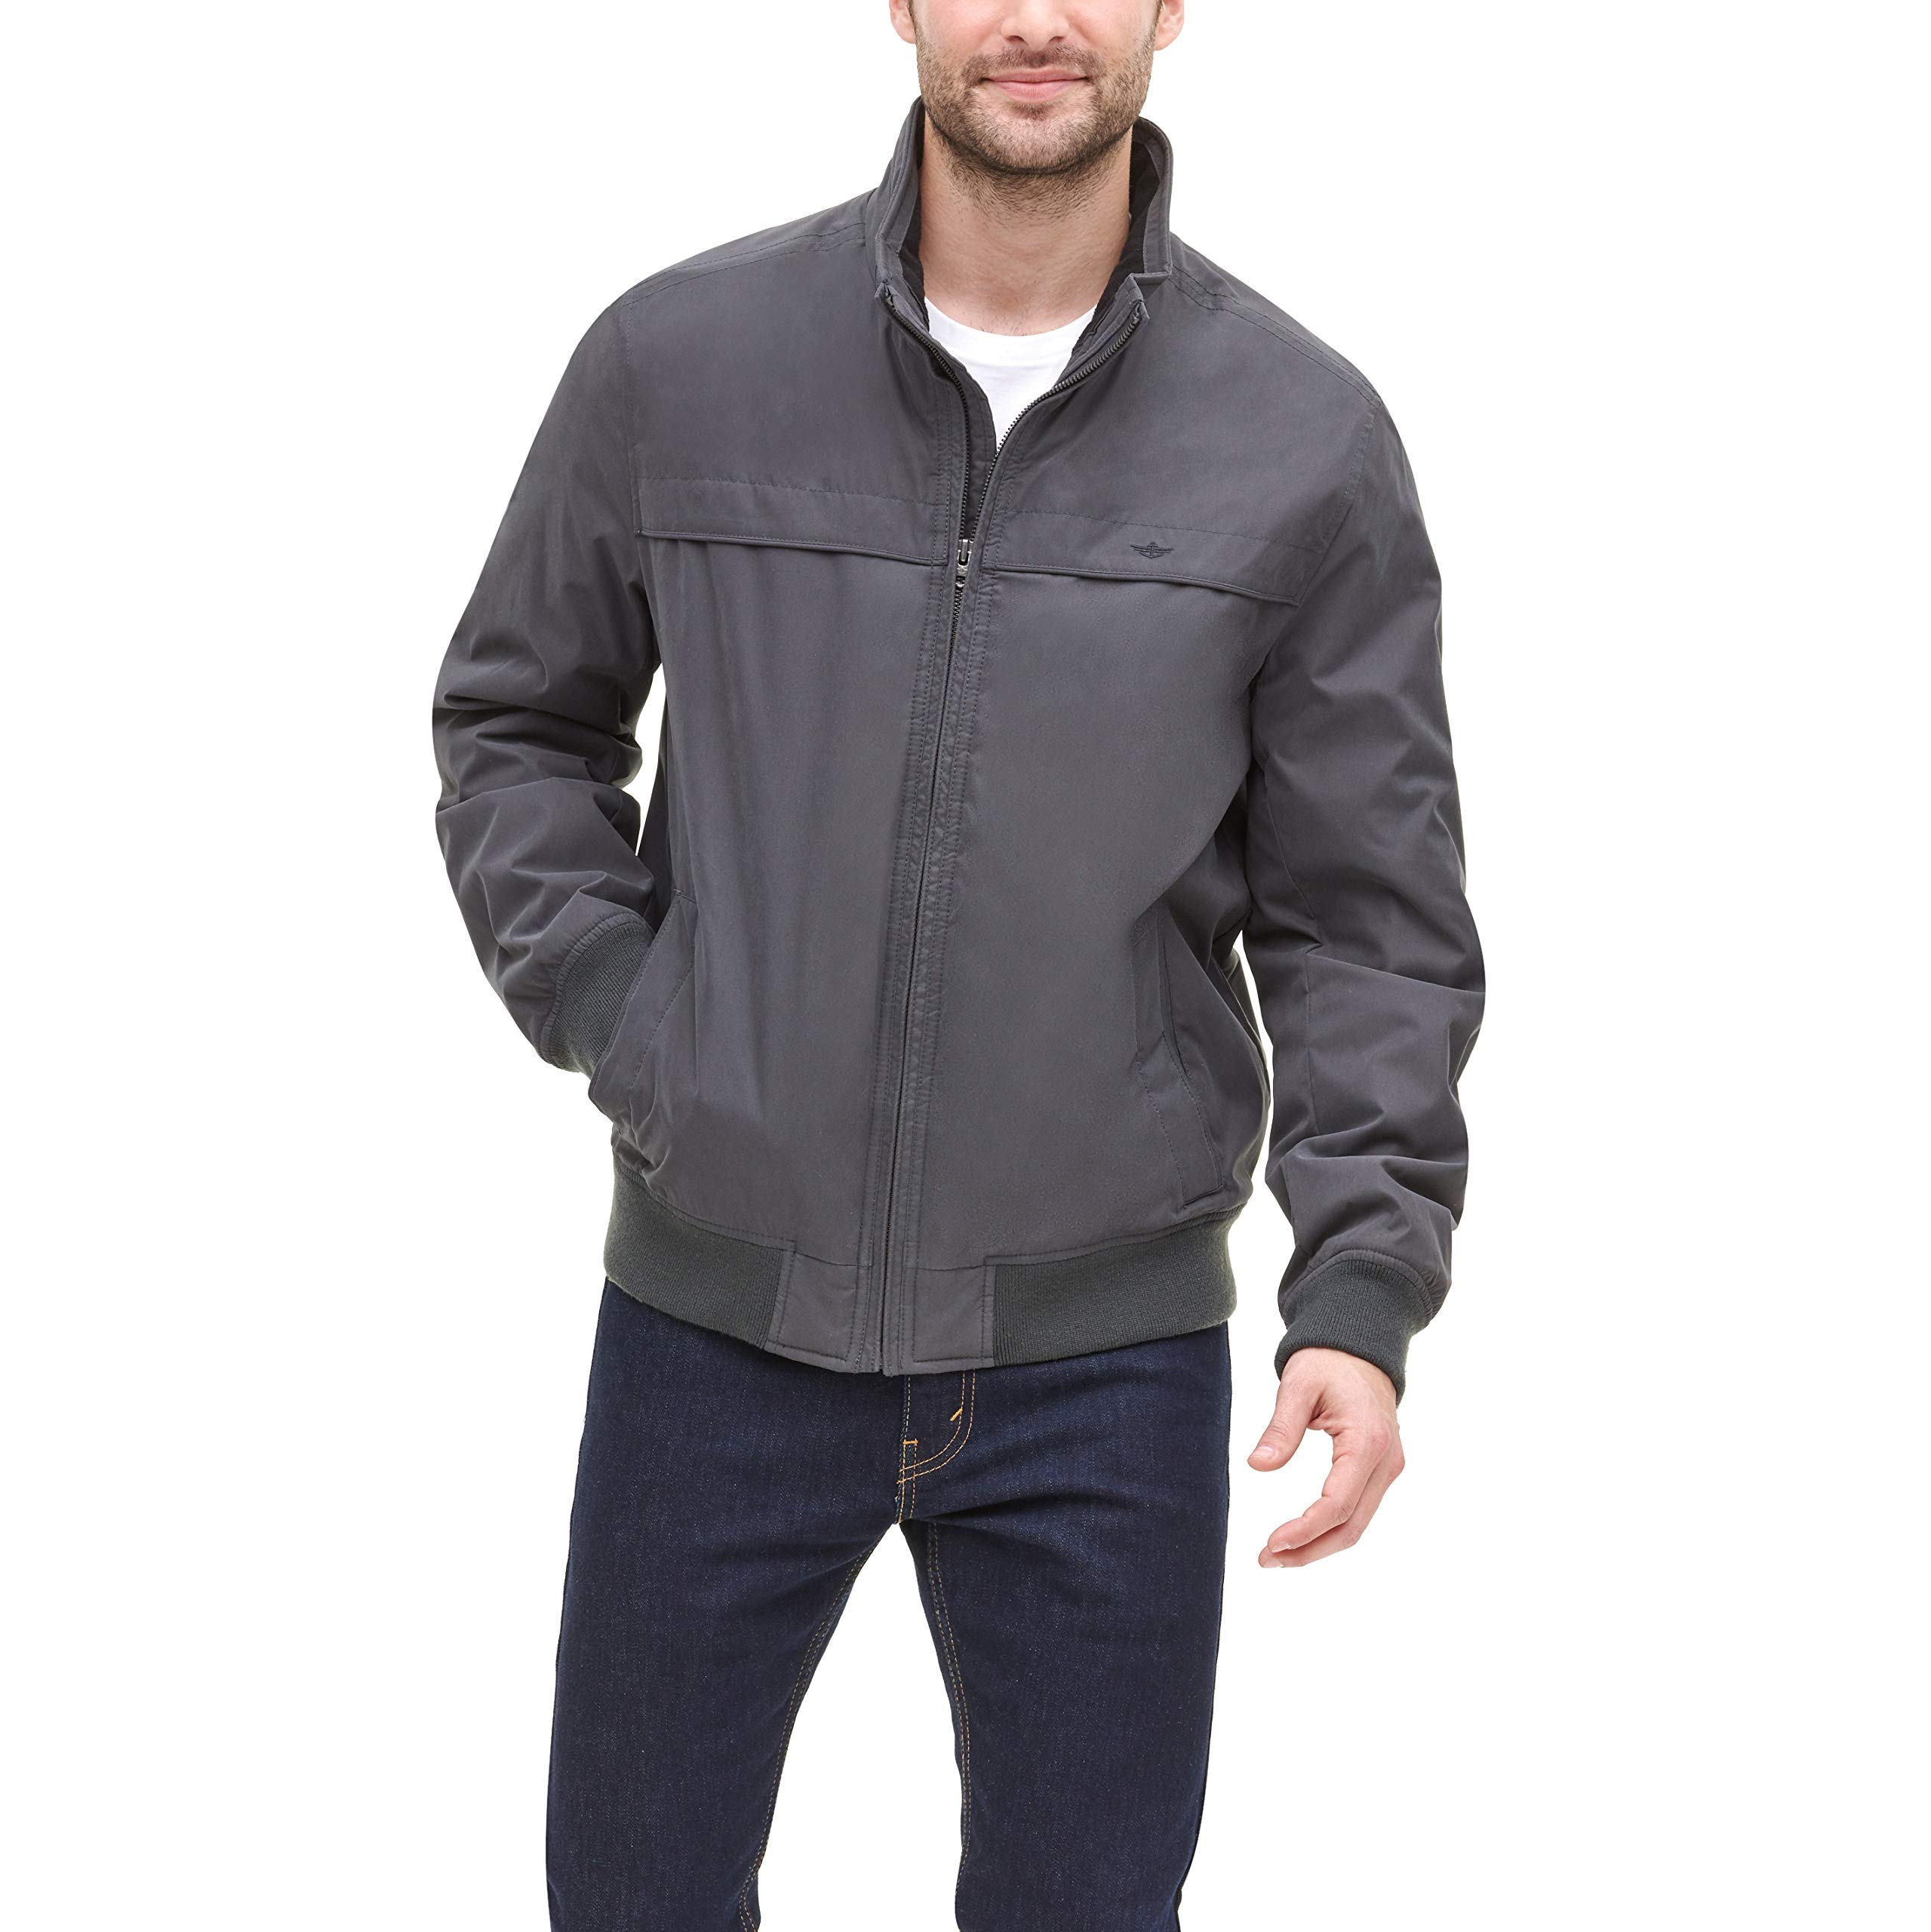 Dockers Men's Micro Twill Golf Bomber Jacket, Charcoal, Large by Dockers